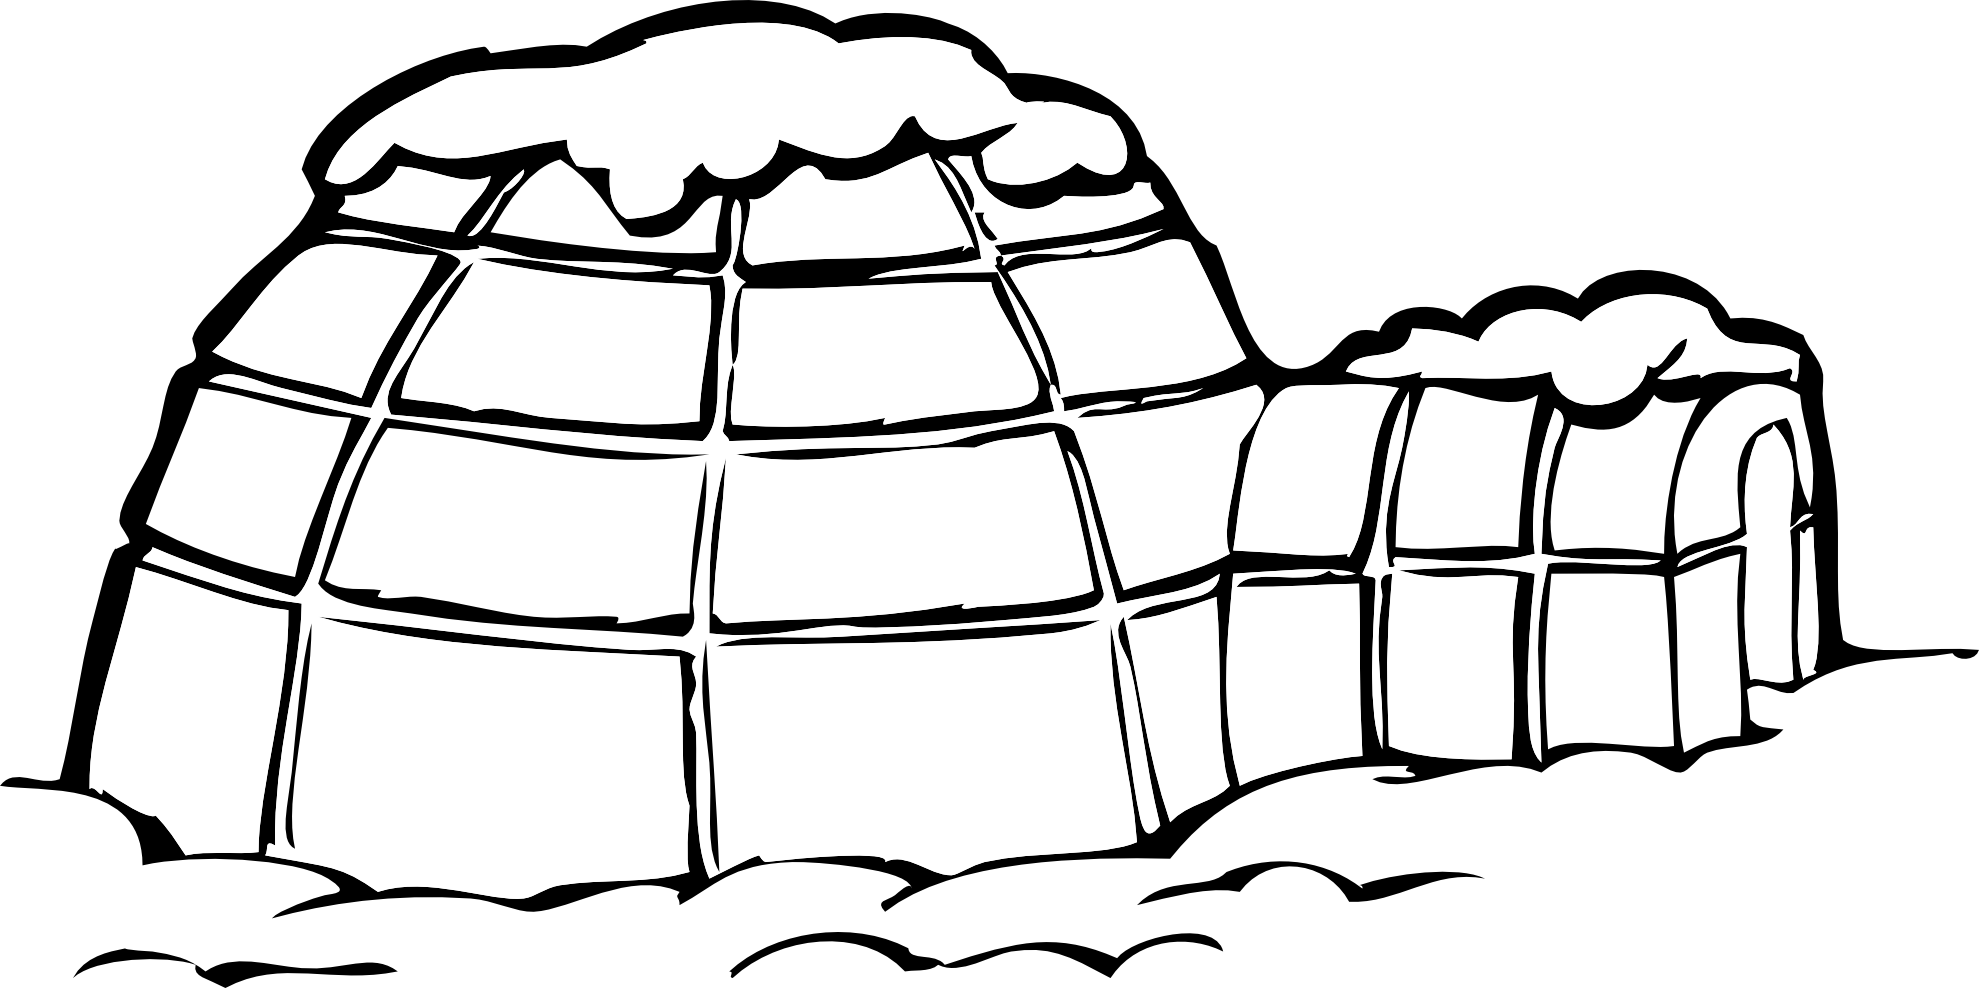 Igloo clipart black and white free images